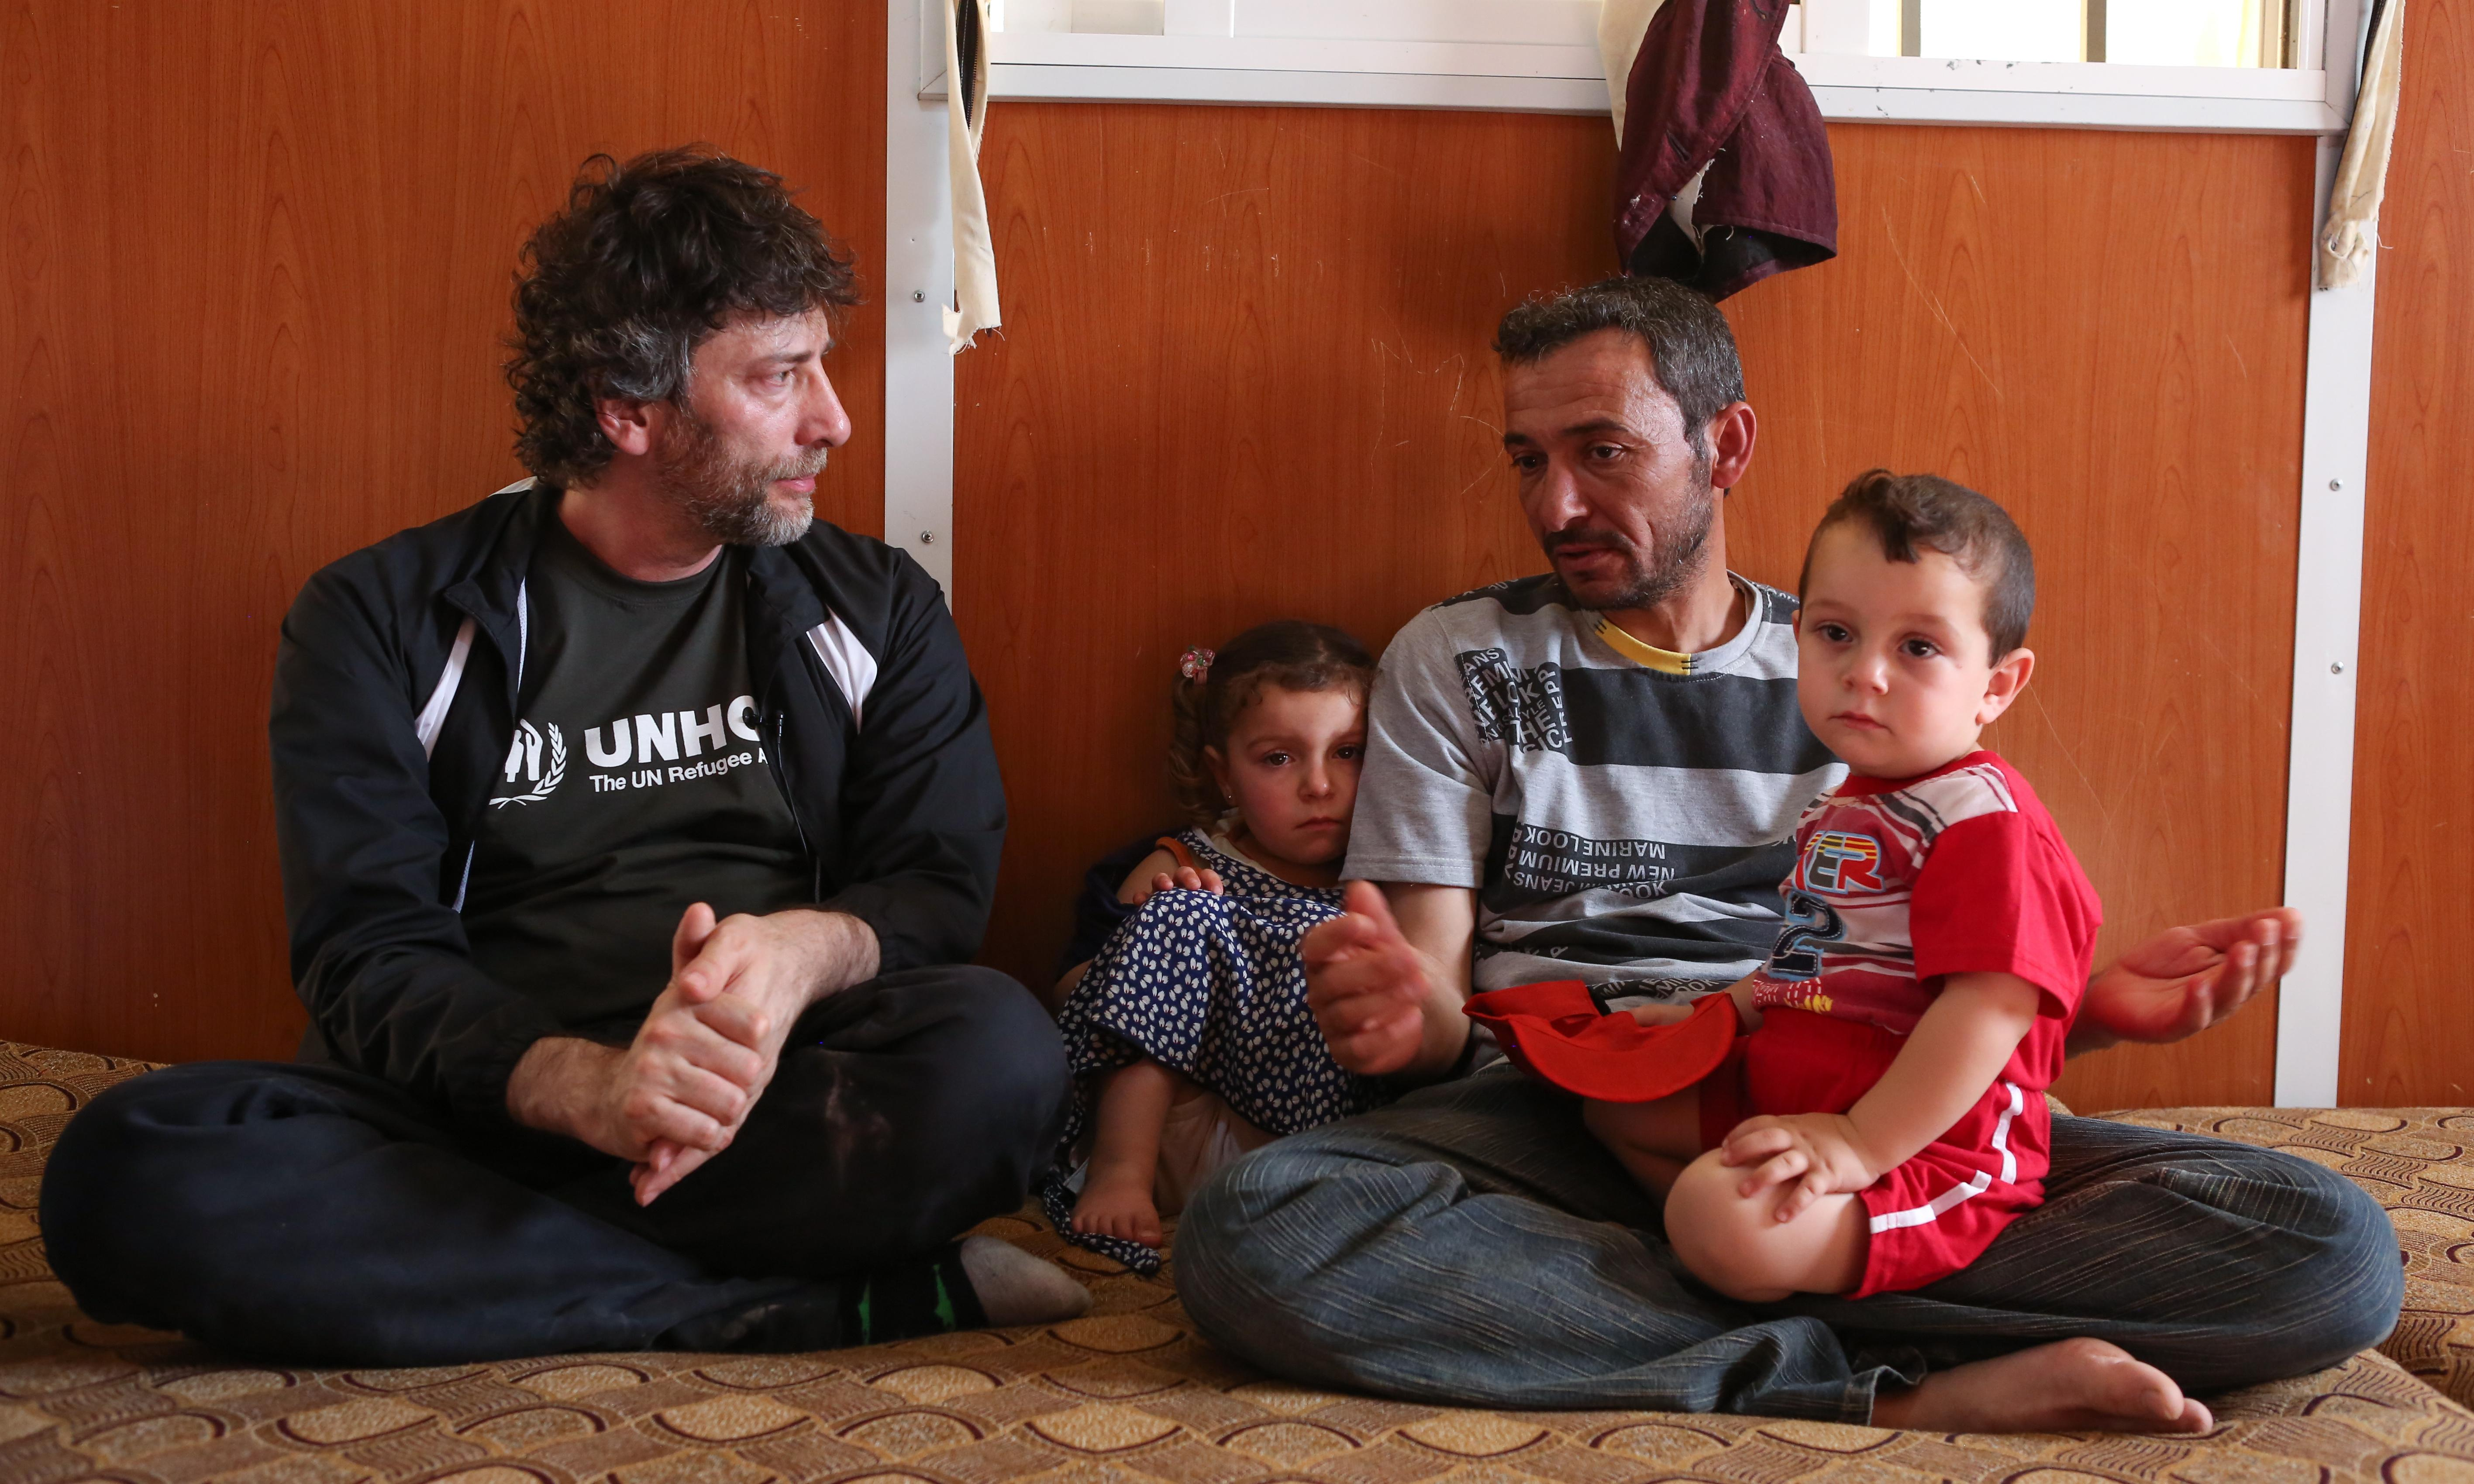 'Ridiculously hard': how Neil Gaiman wrote a poem for refugees from 1,000 tweets